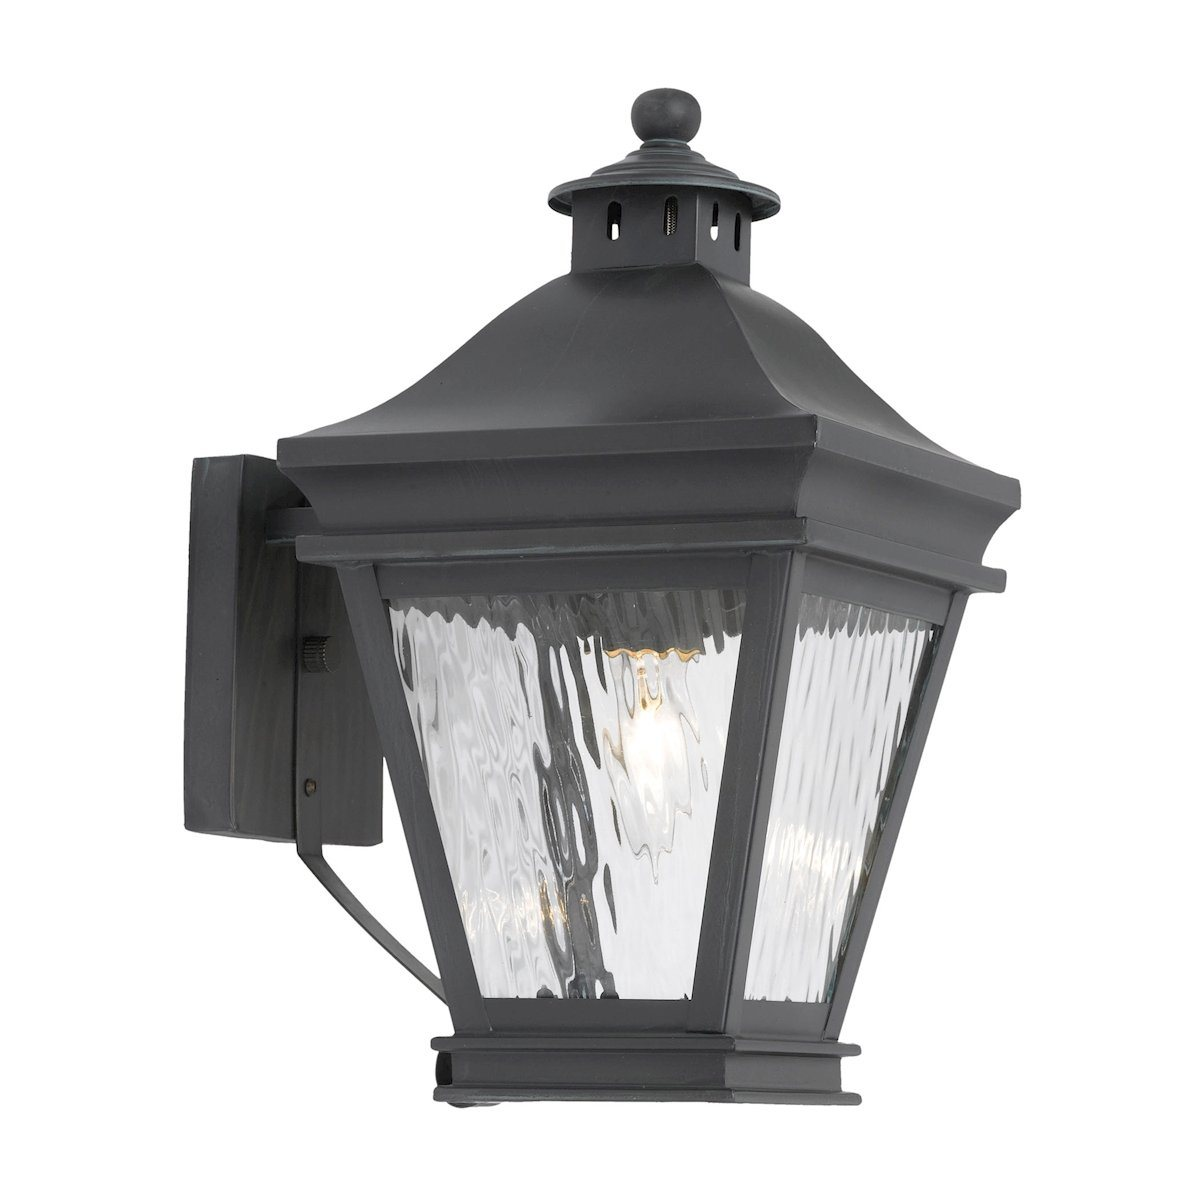 Landings Outdoor Wall Lantern In Charcoal And Water Glass Outdoor Wall Elk Lighting